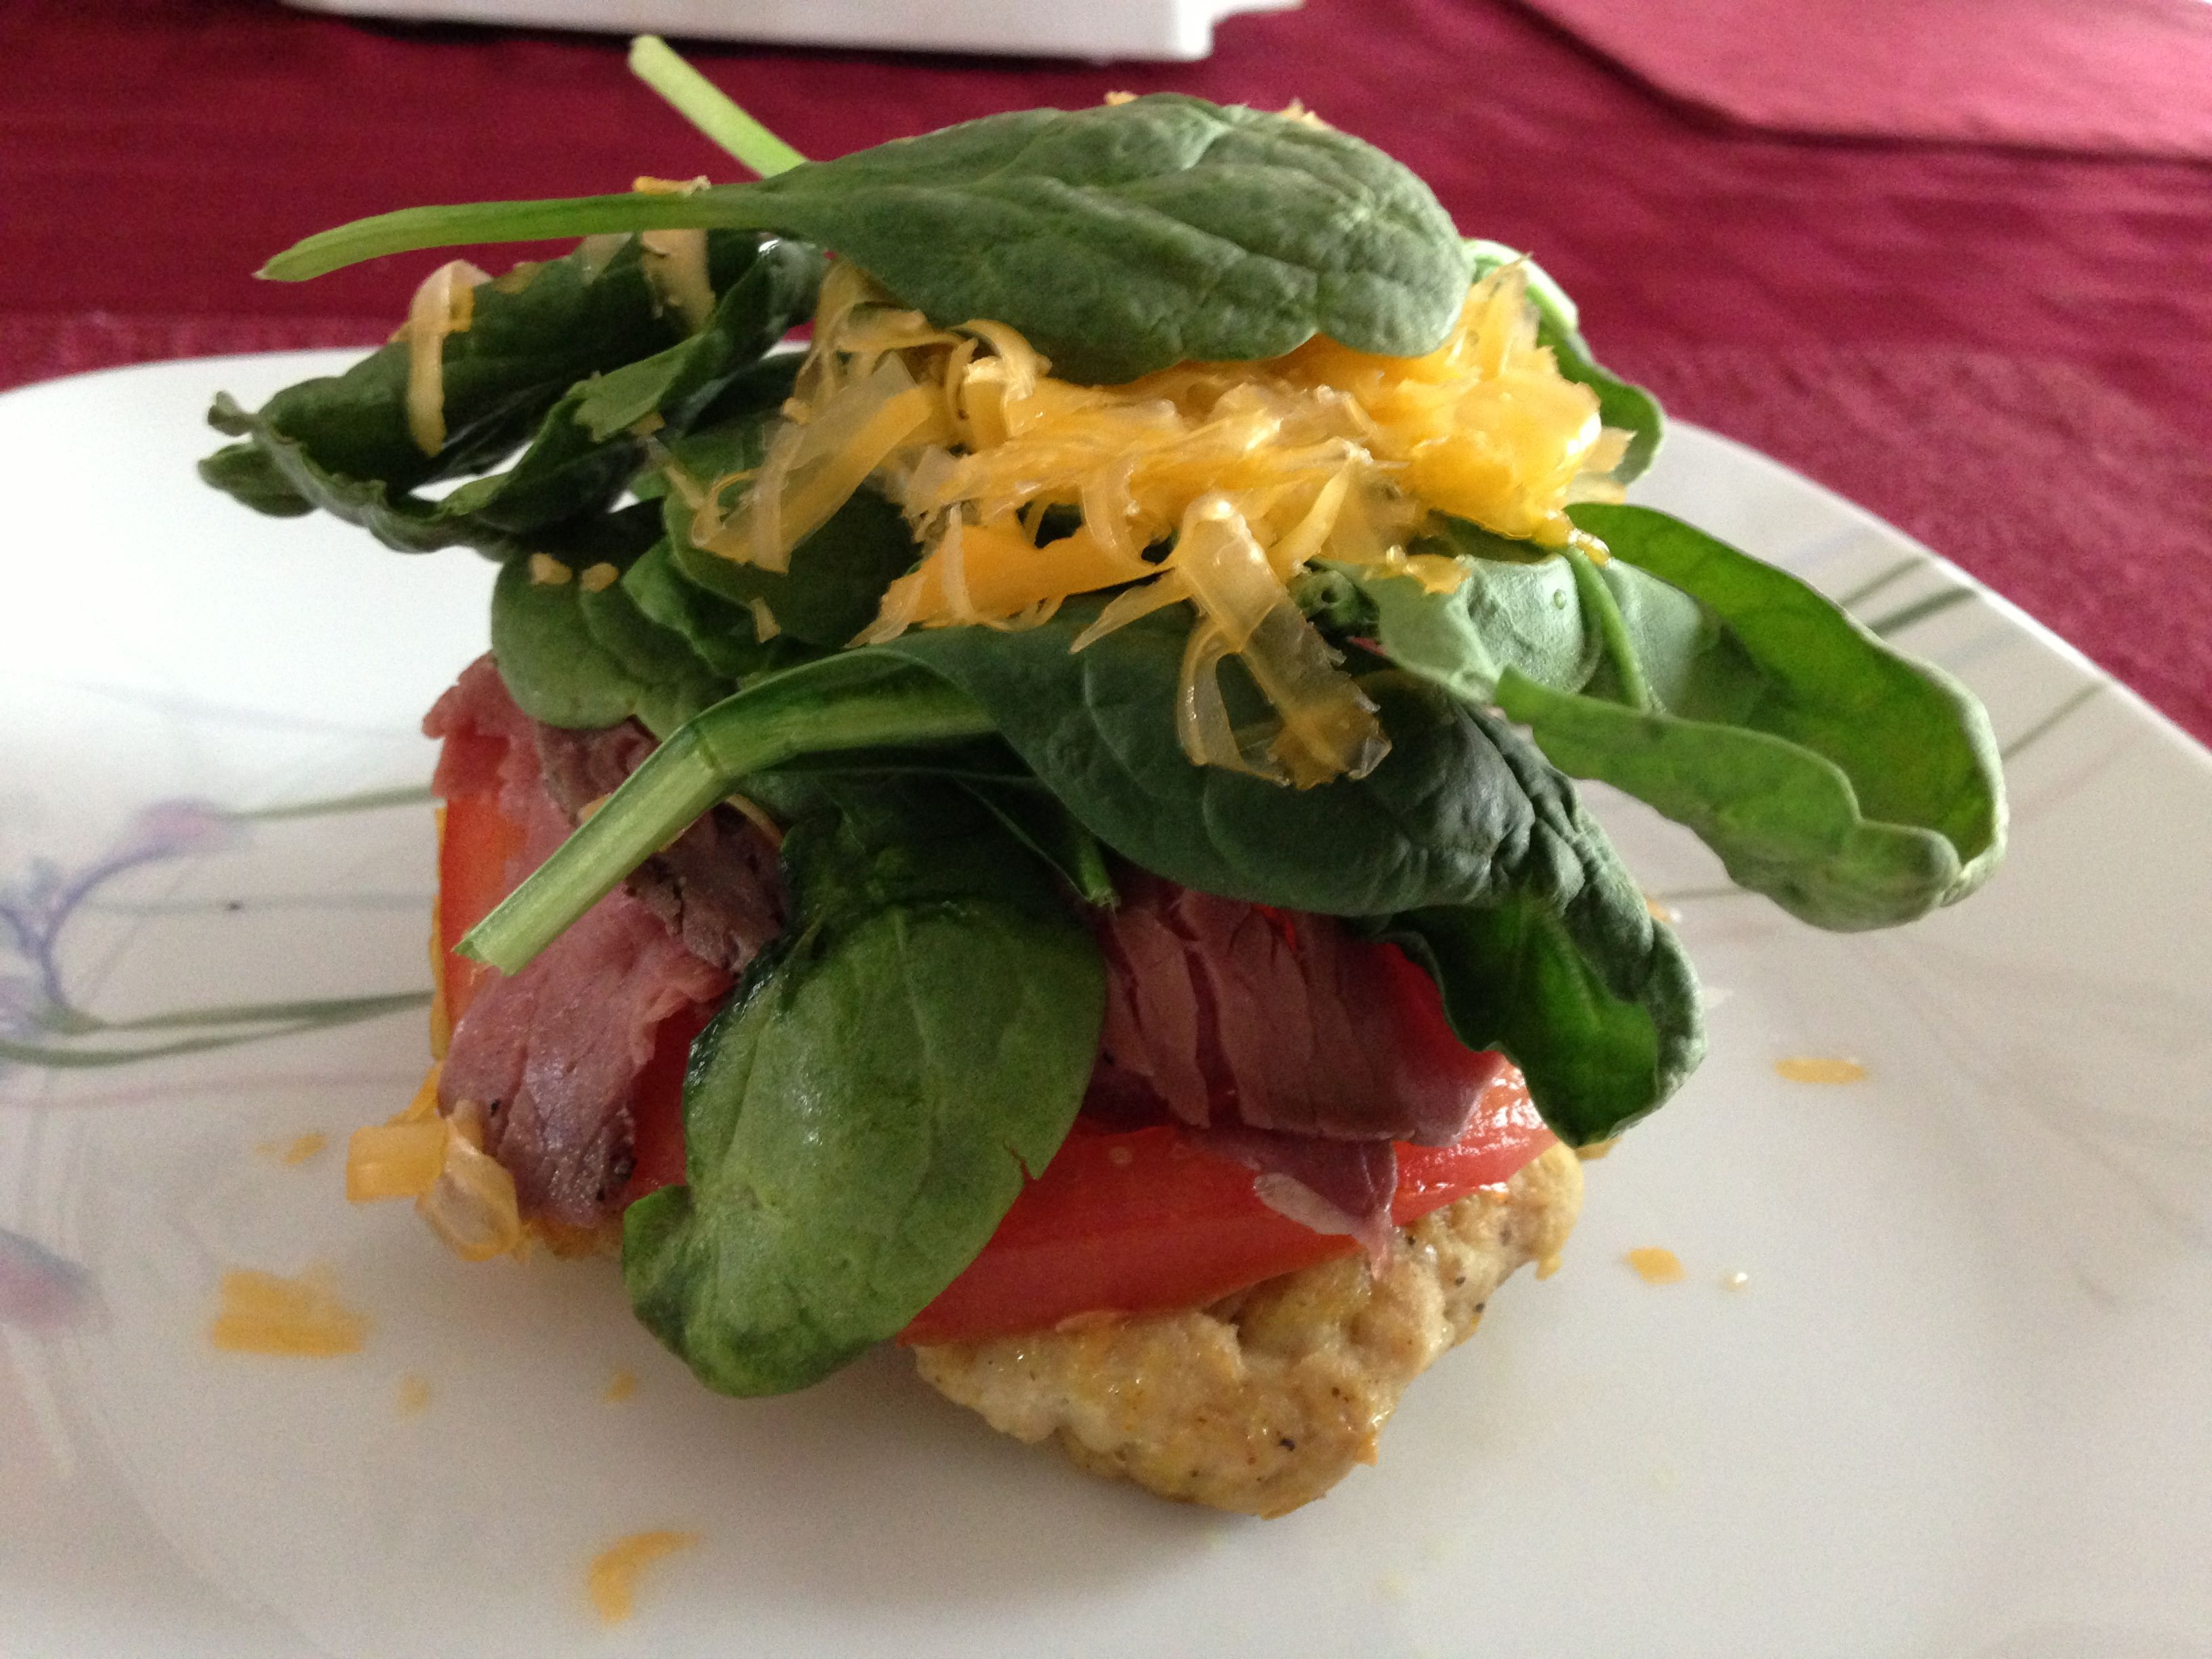 Turkey burger Toppings: Tomato, roast beef, avocado, spinach, cheddar cheese, and mustard.